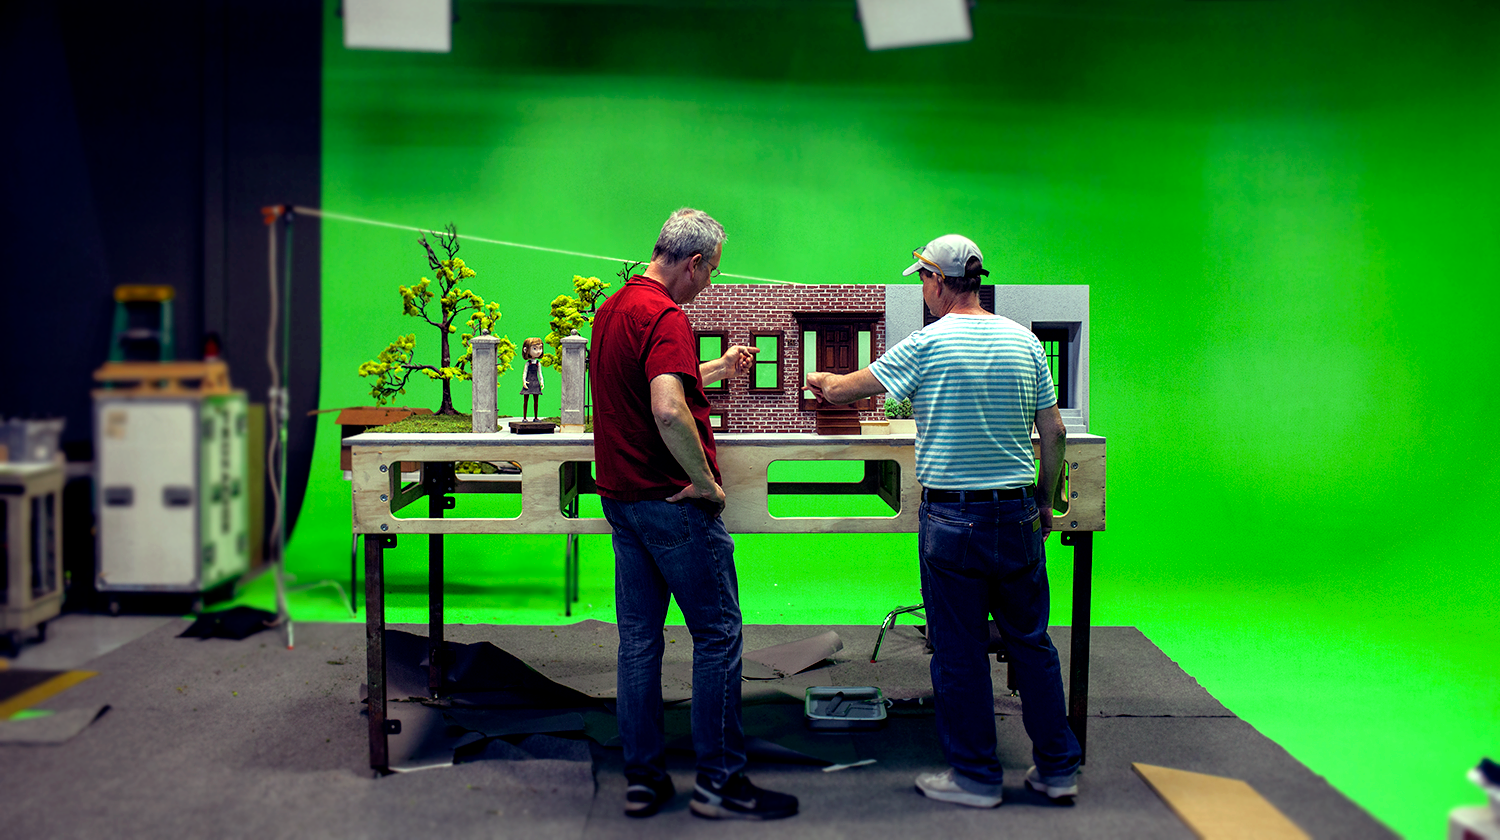 Green Screen Stage with Stop-Motion Animation setup